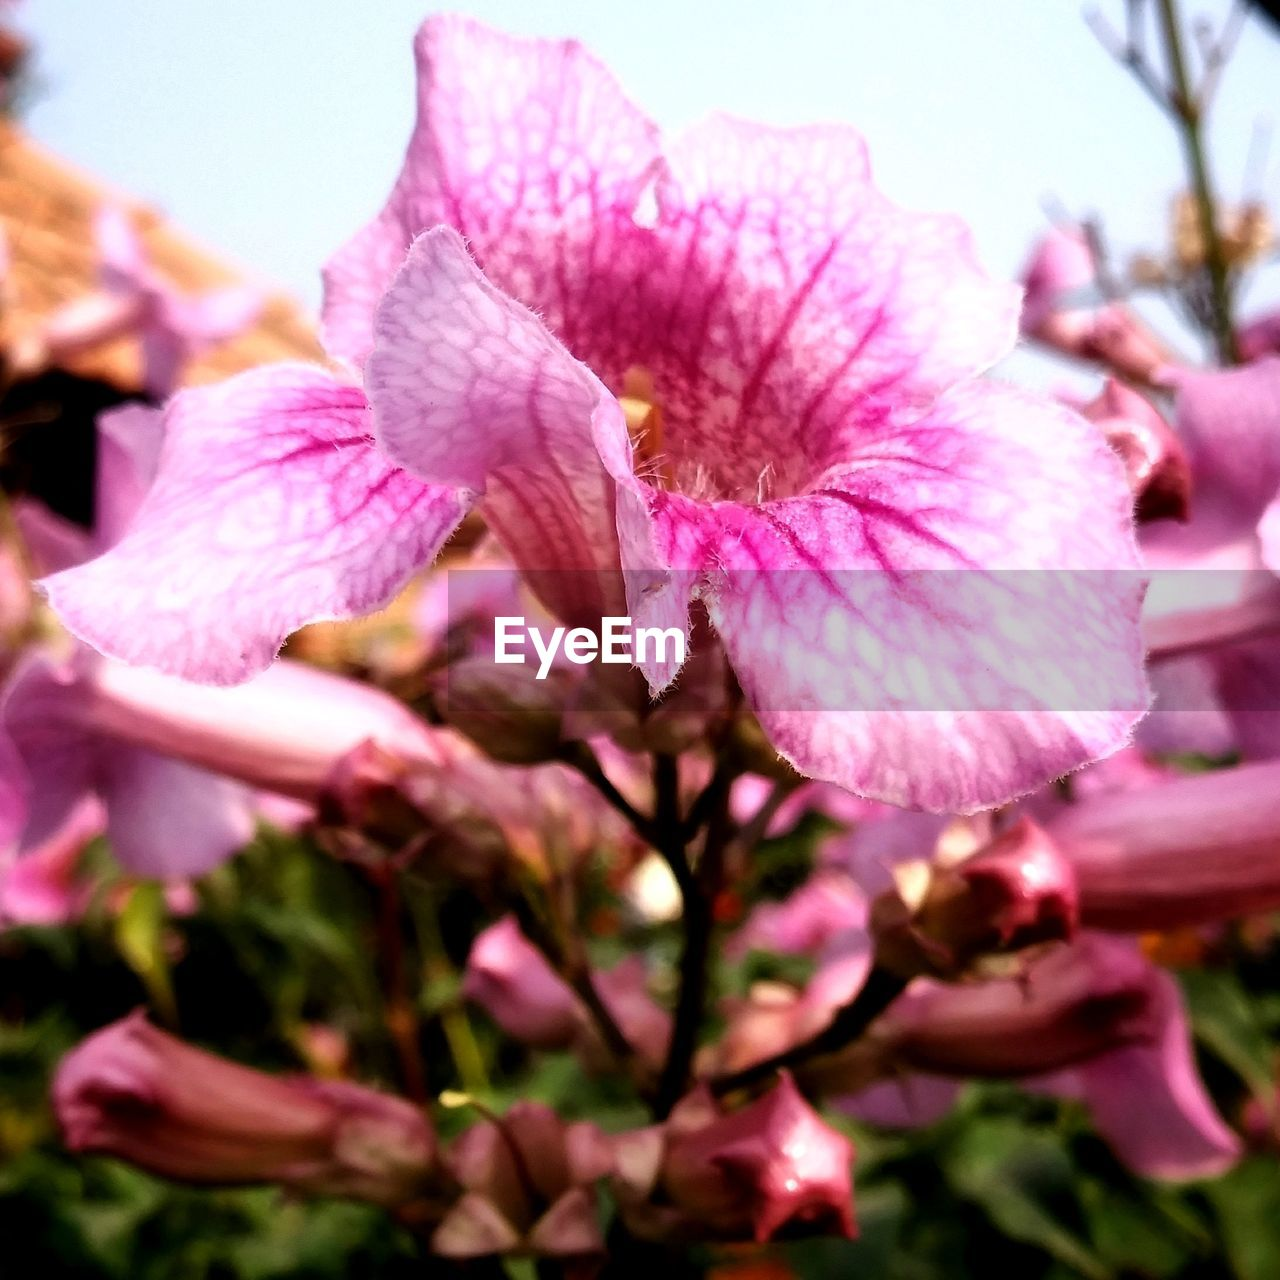 flower, pink color, beauty in nature, petal, nature, fragility, growth, flower head, close-up, no people, plant, freshness, stamen, outdoors, springtime, blooming, day